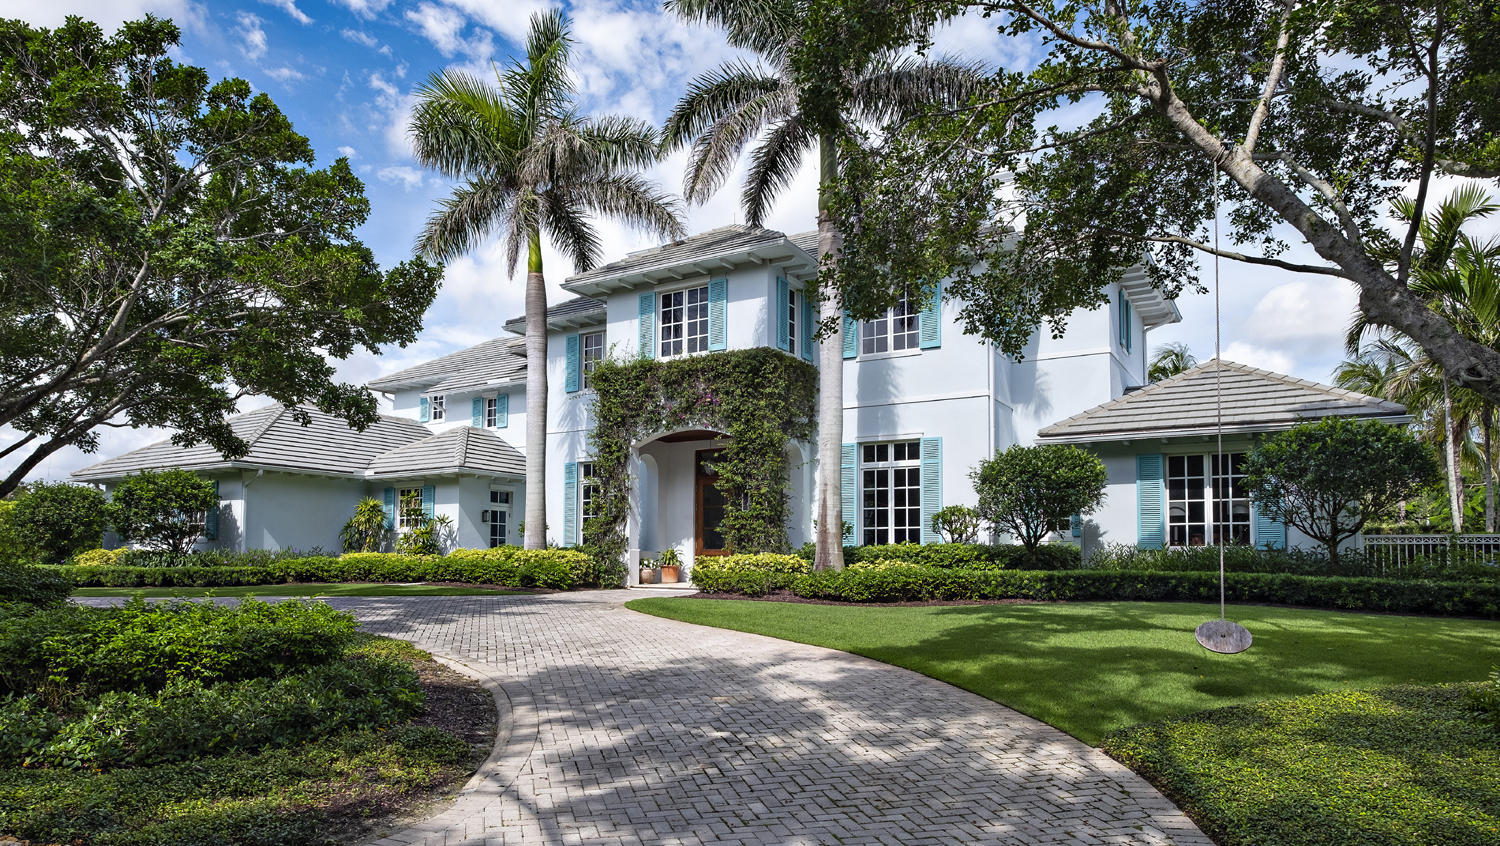 12175 Banyan Road, North Palm Beach, Florida 33408, 5 Bedrooms Bedrooms, ,4.1 BathroomsBathrooms,A,Single family,Banyan,RX-10440300